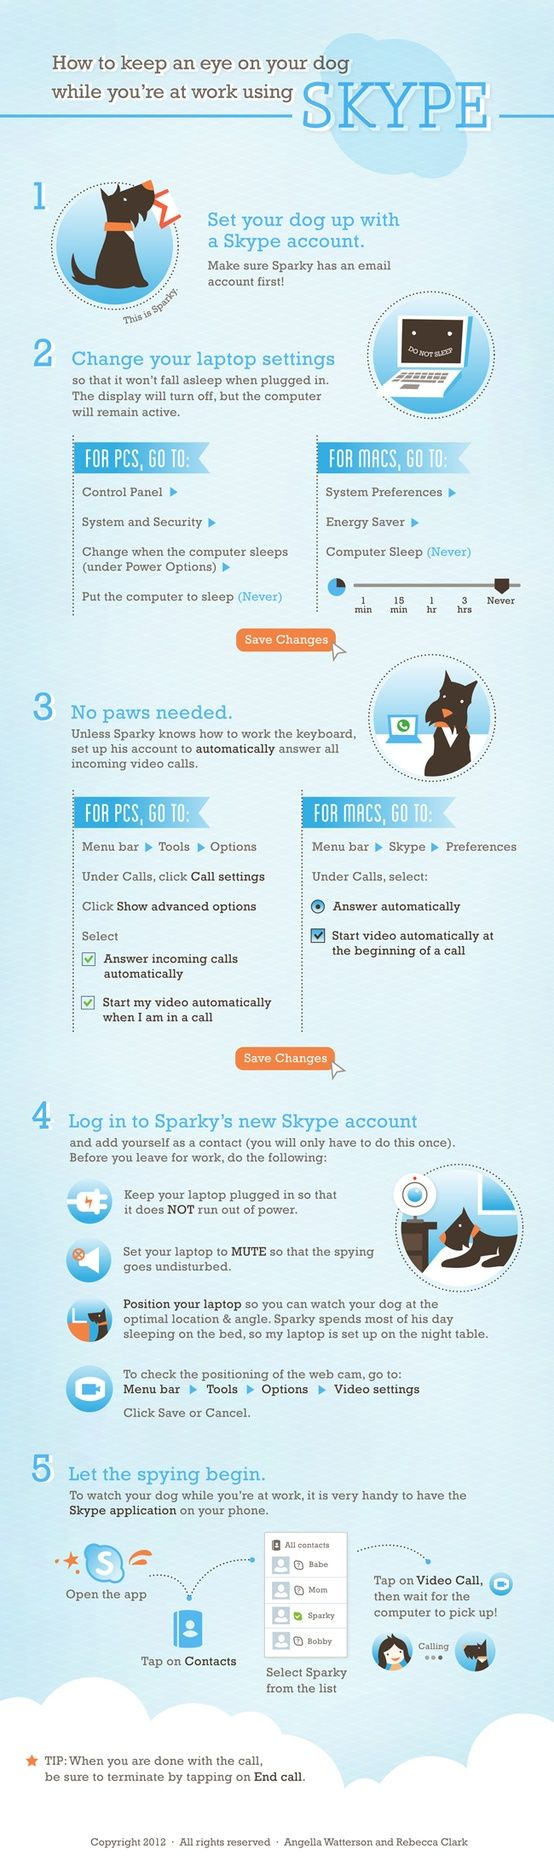 Use Skype To Watch Over Your Dog/Cat While You're at Work | Infographic: You need to create an email for your pet & an account :) | via The Book Recruitment Agency Blog